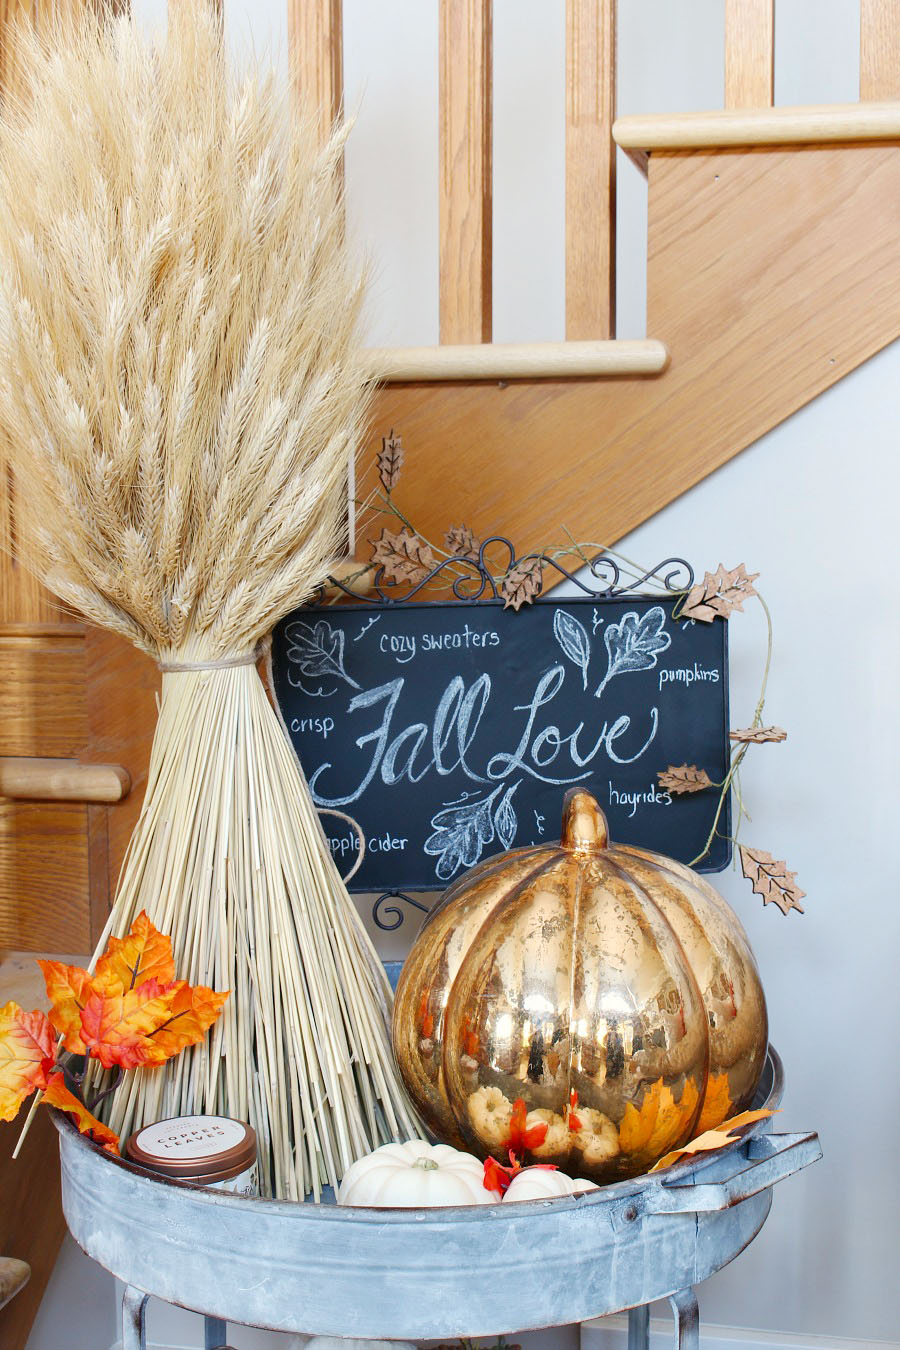 Family Room Fall Decorating Ideas with a cute fall chalkboard. Easy fall decorations in traditional autumn colors with pops of blue.